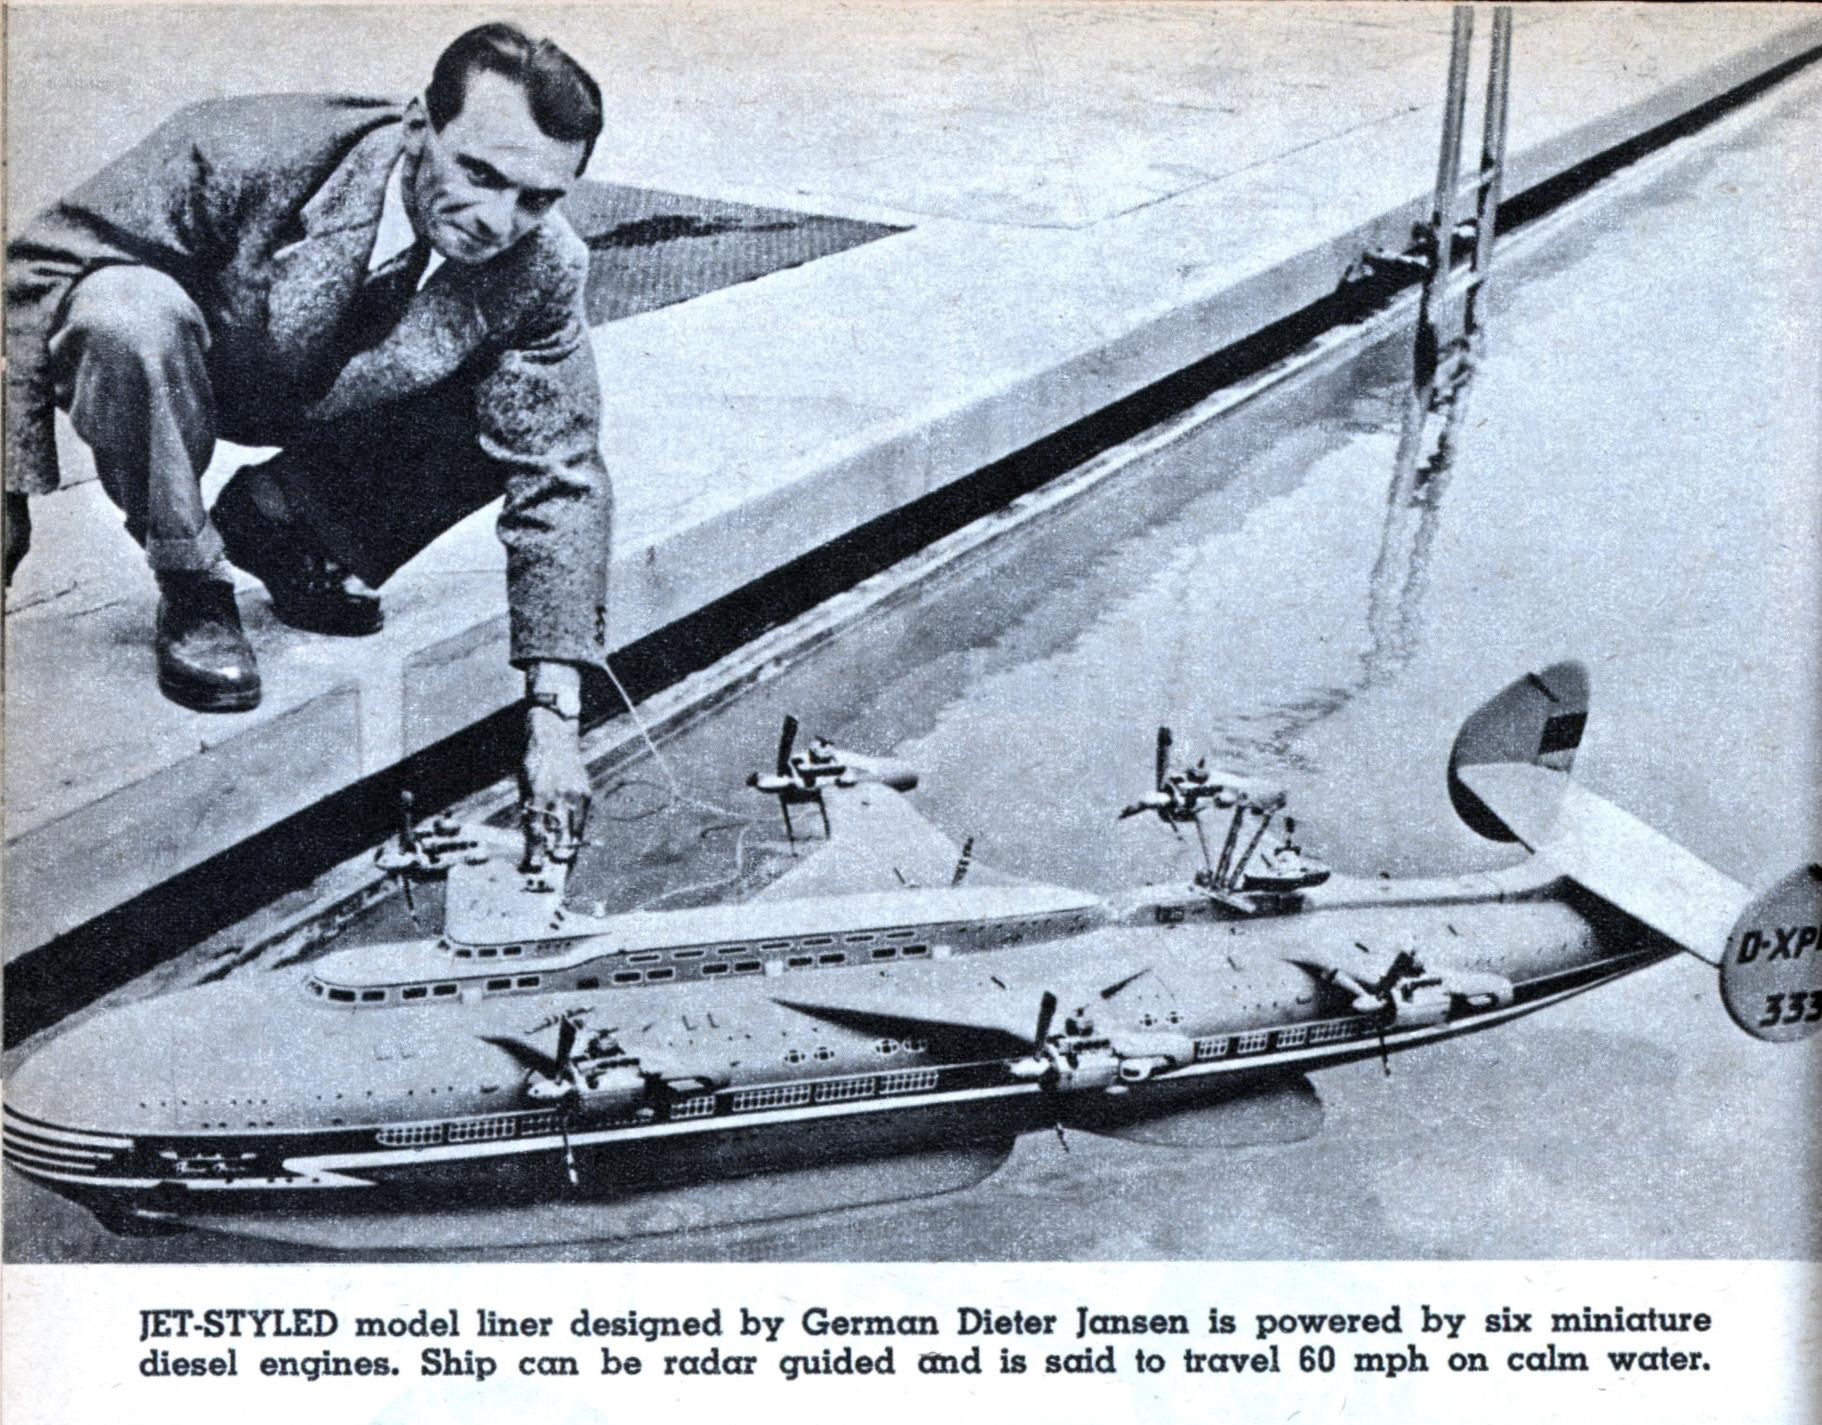 JET-STYLED model liner designed by German Dieter Jansen is powered by ...